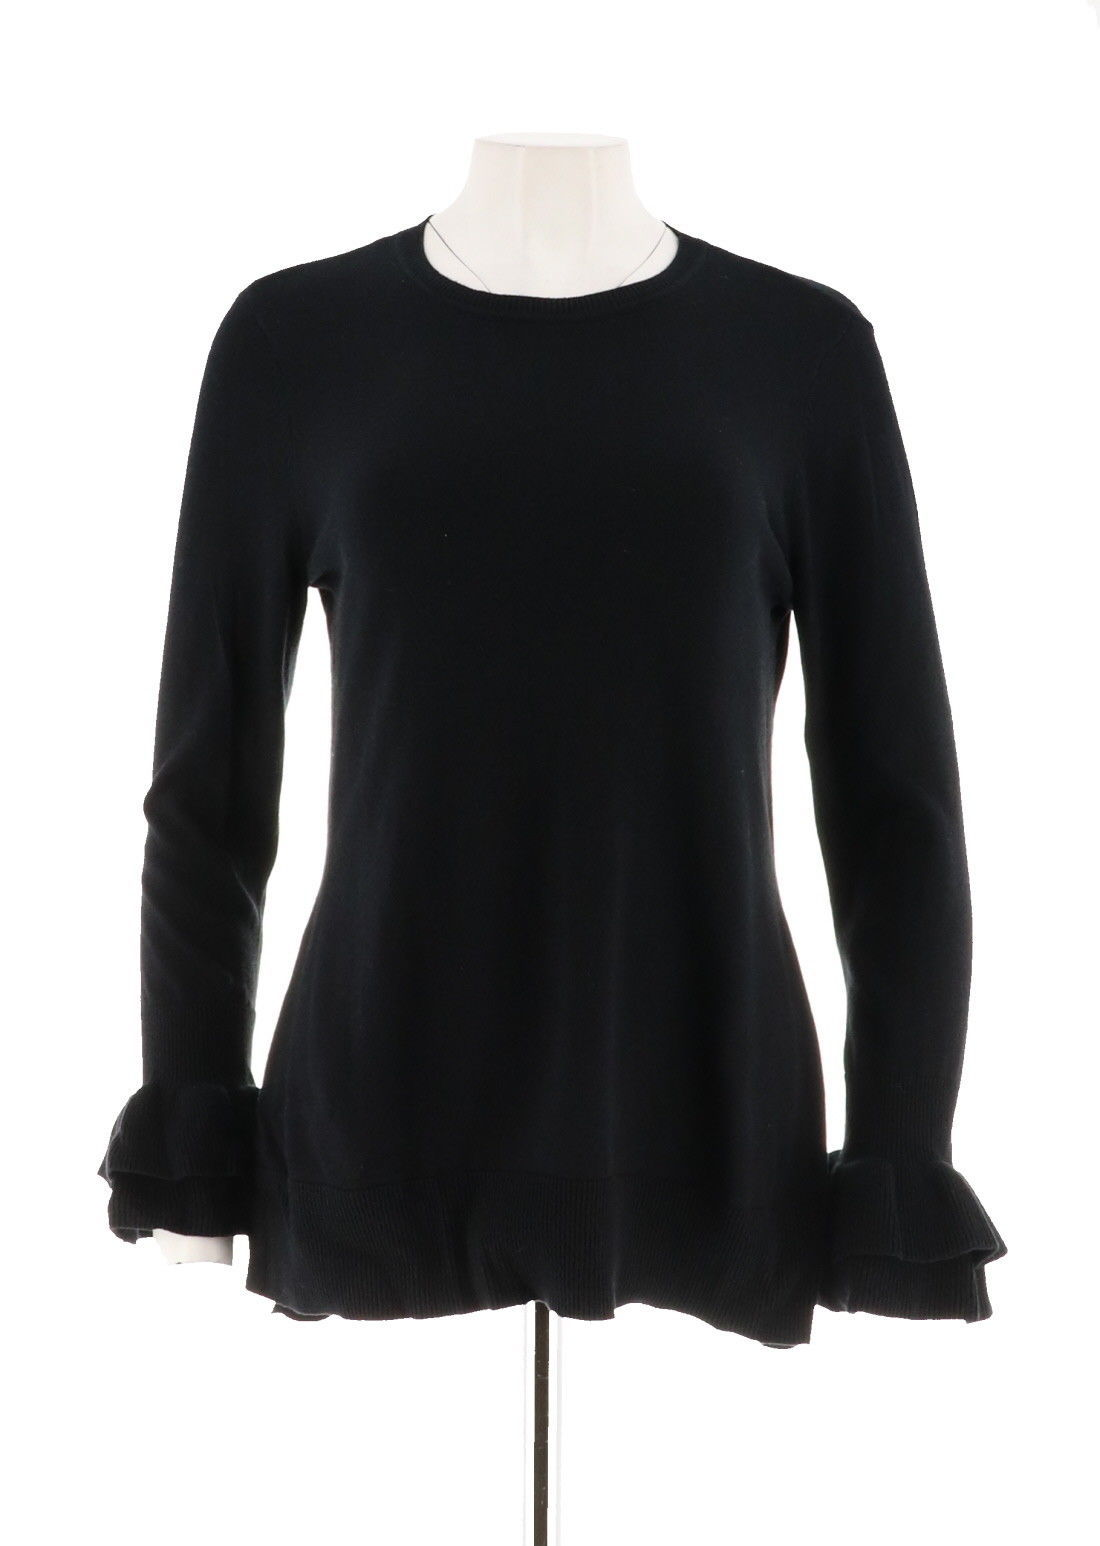 Primary image for Isaac Mizrahi Ruffle Bell Slv Tunic Sweater Black S NEW A296763